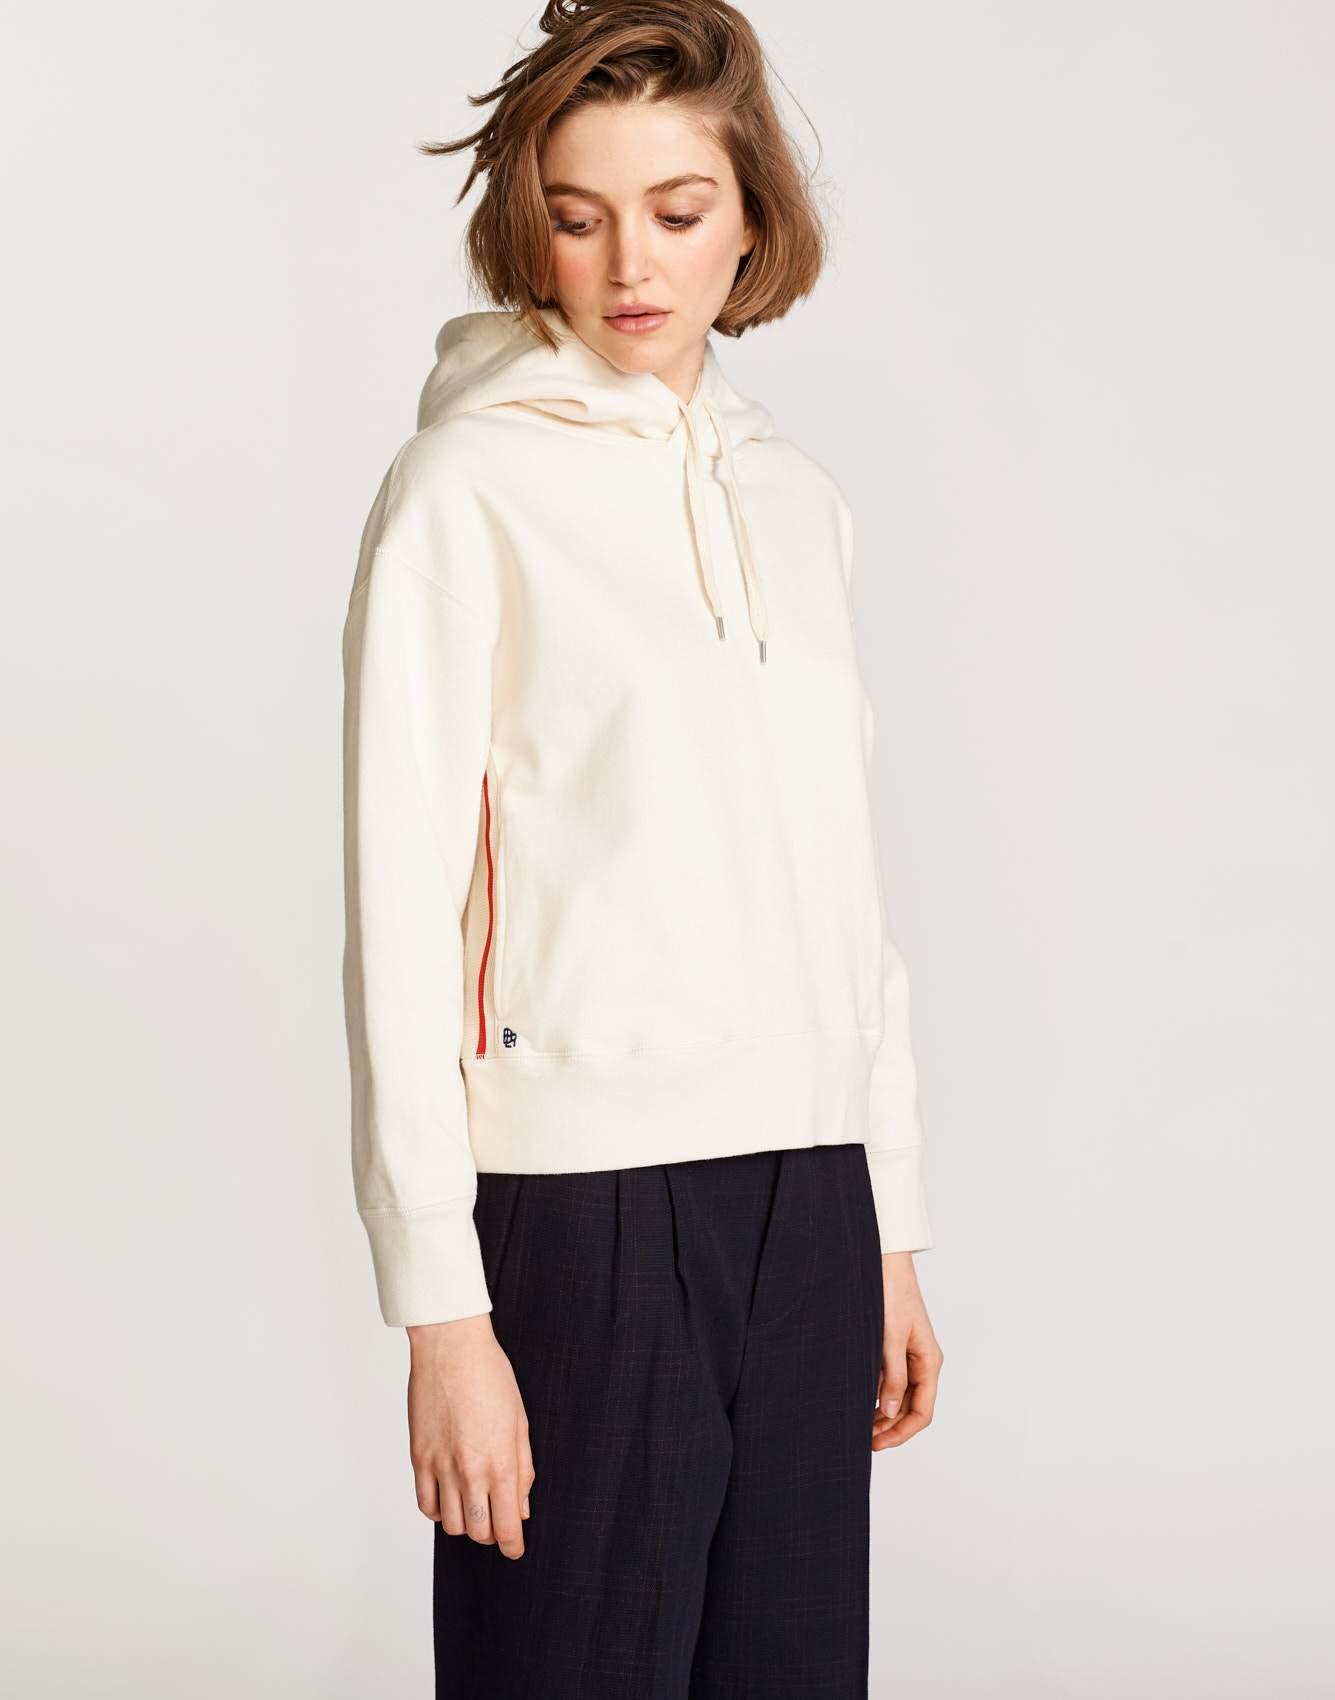 Bellerose white cotton hoodie for women